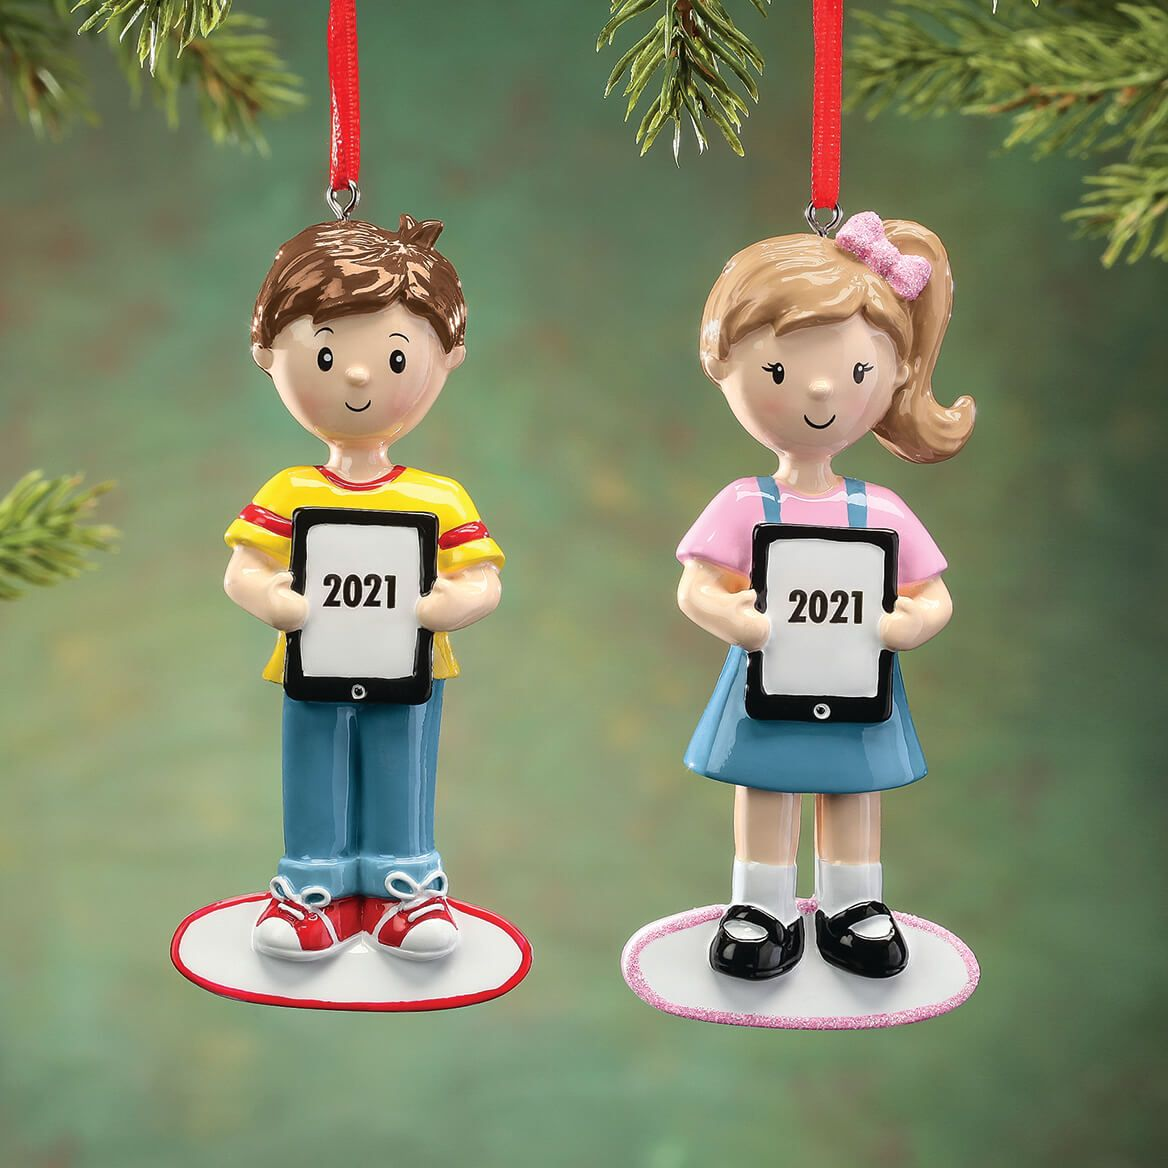 Personalized Tablet Child Ornament-368516